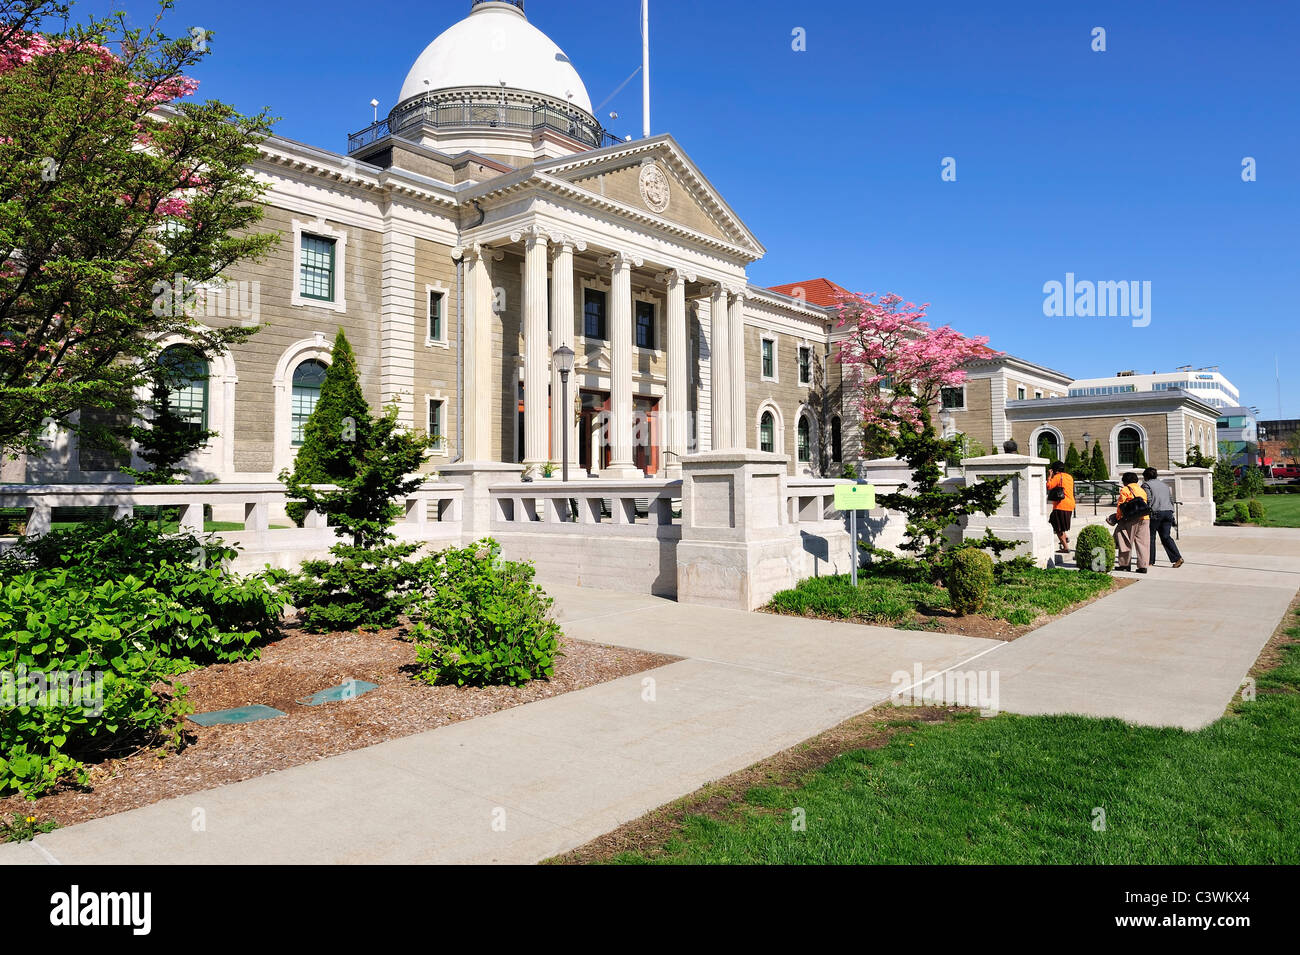 Nassau County Executive and Legislative Building front exterior seen facing NW, far people on walkway, May 9, 2011, - Stock Image